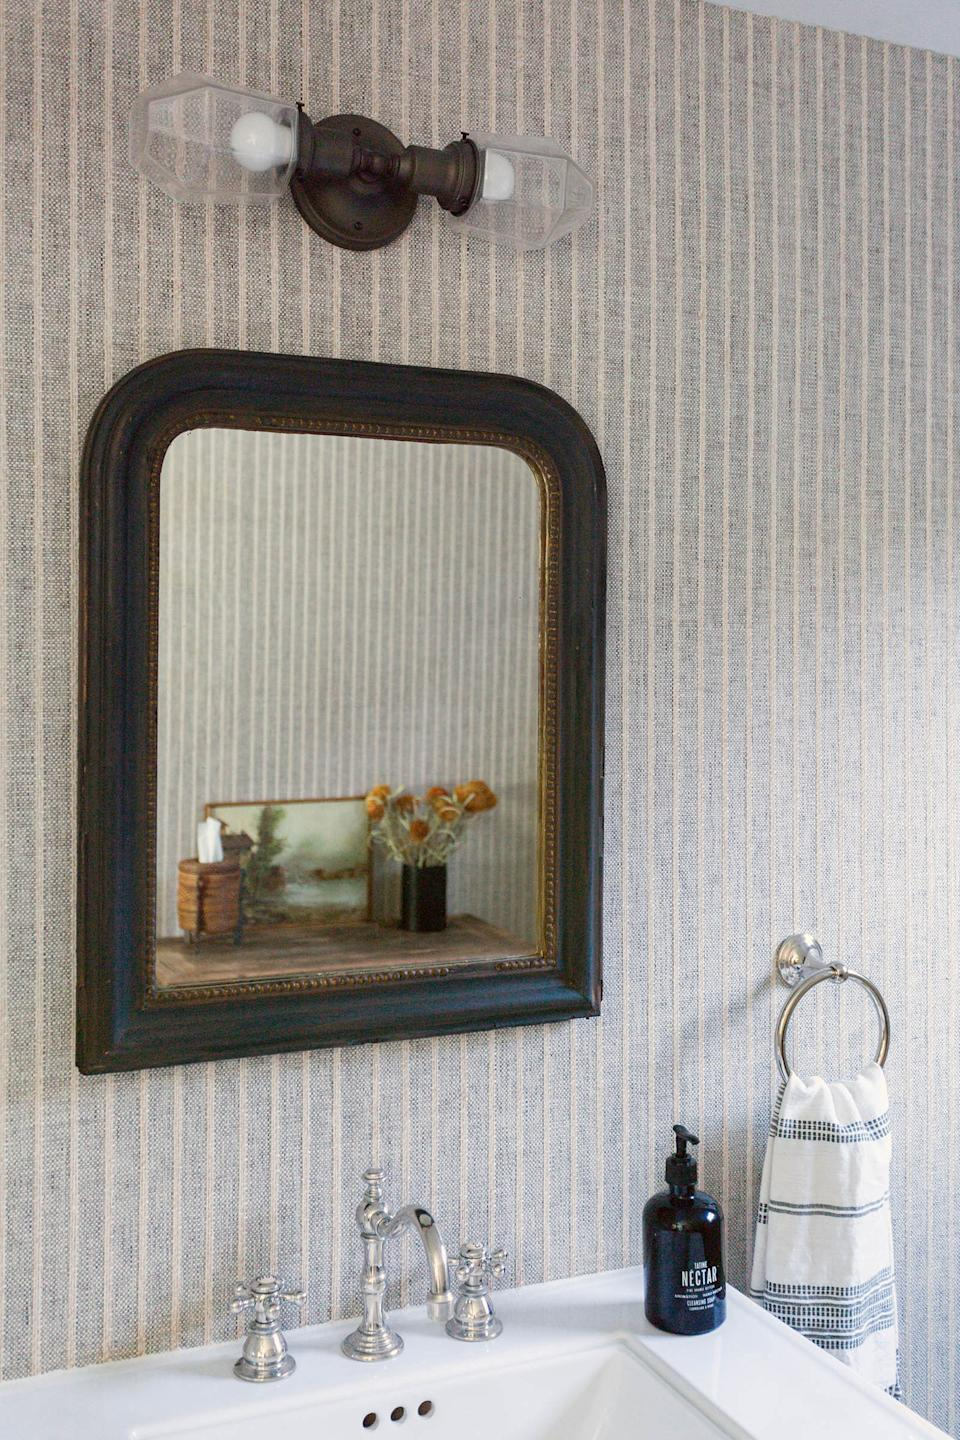 "<div class=""caption""> The home's powder room features wallpaper from <a href=""https://www.phillipjeffries.com/"" rel=""nofollow noopener"" target=""_blank"" data-ylk=""slk:Phillip Jeffries"" class=""link rapid-noclick-resp"">Phillip Jeffries</a>, a faucet from <a href=""https://www.newportbrass.com/"" rel=""nofollow noopener"" target=""_blank"" data-ylk=""slk:Newport Brass"" class=""link rapid-noclick-resp"">Newport Brass</a>, and a light from <a href=""https://www.schoolhouse.com/"" rel=""nofollow noopener"" target=""_blank"" data-ylk=""slk:Schoolhouse"" class=""link rapid-noclick-resp"">Schoolhouse</a>. The mirror is an antique sourced by Boesch. </div>"